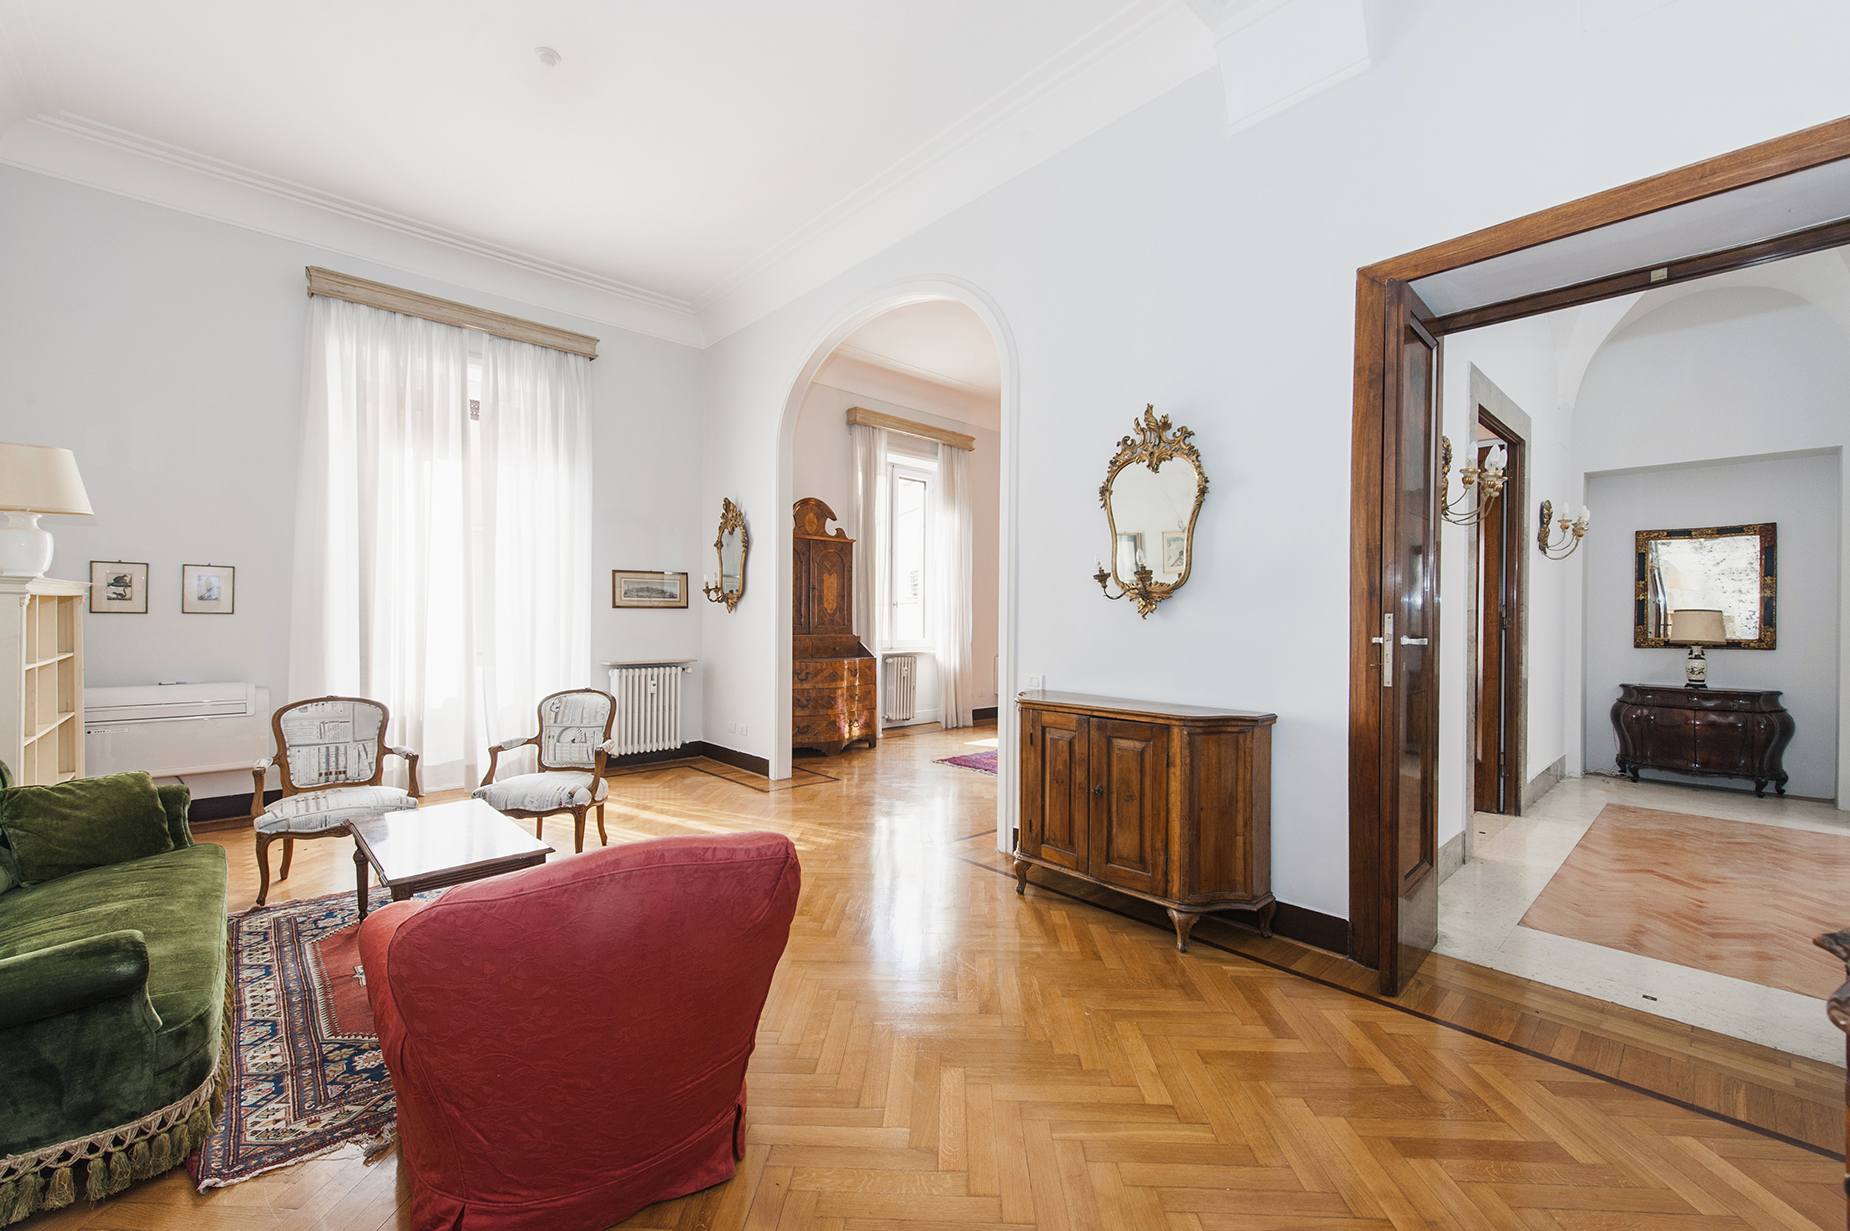 Apartment for Sale at Apartment ideal for entertaining close to Piazza Ungheria Via Lima Rome, Rome, 00198 Italy